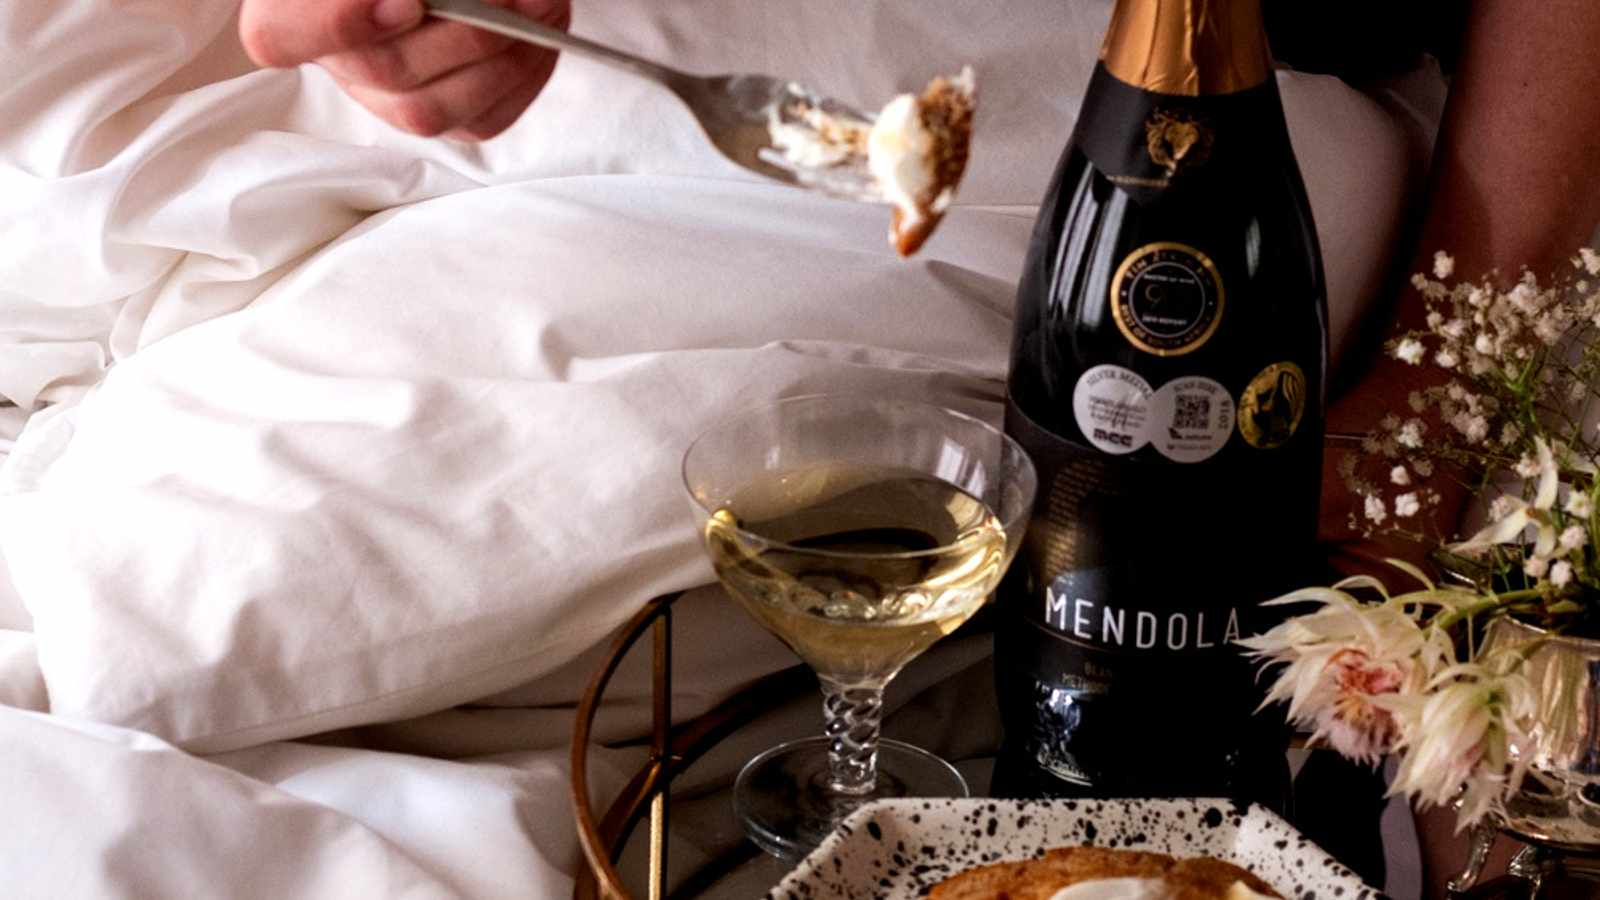 Recipe: A Bubbles in Bed experience with Rialheim & Windfall Wine